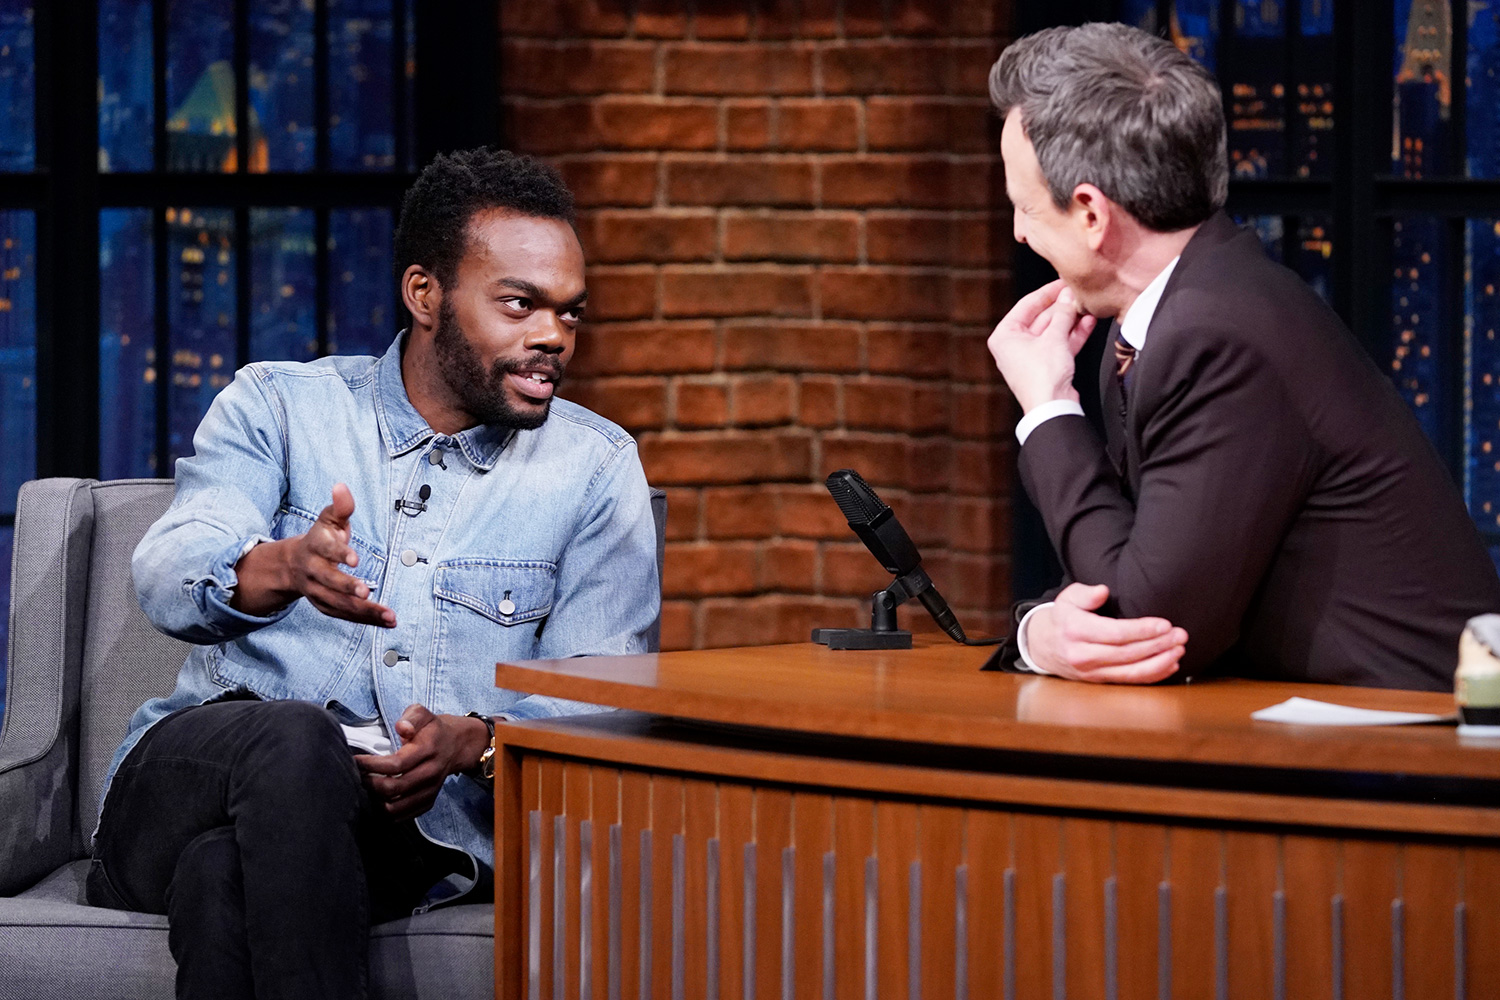 William Jackson Harper during an interview with host Seth Meyers on January 28, 2020